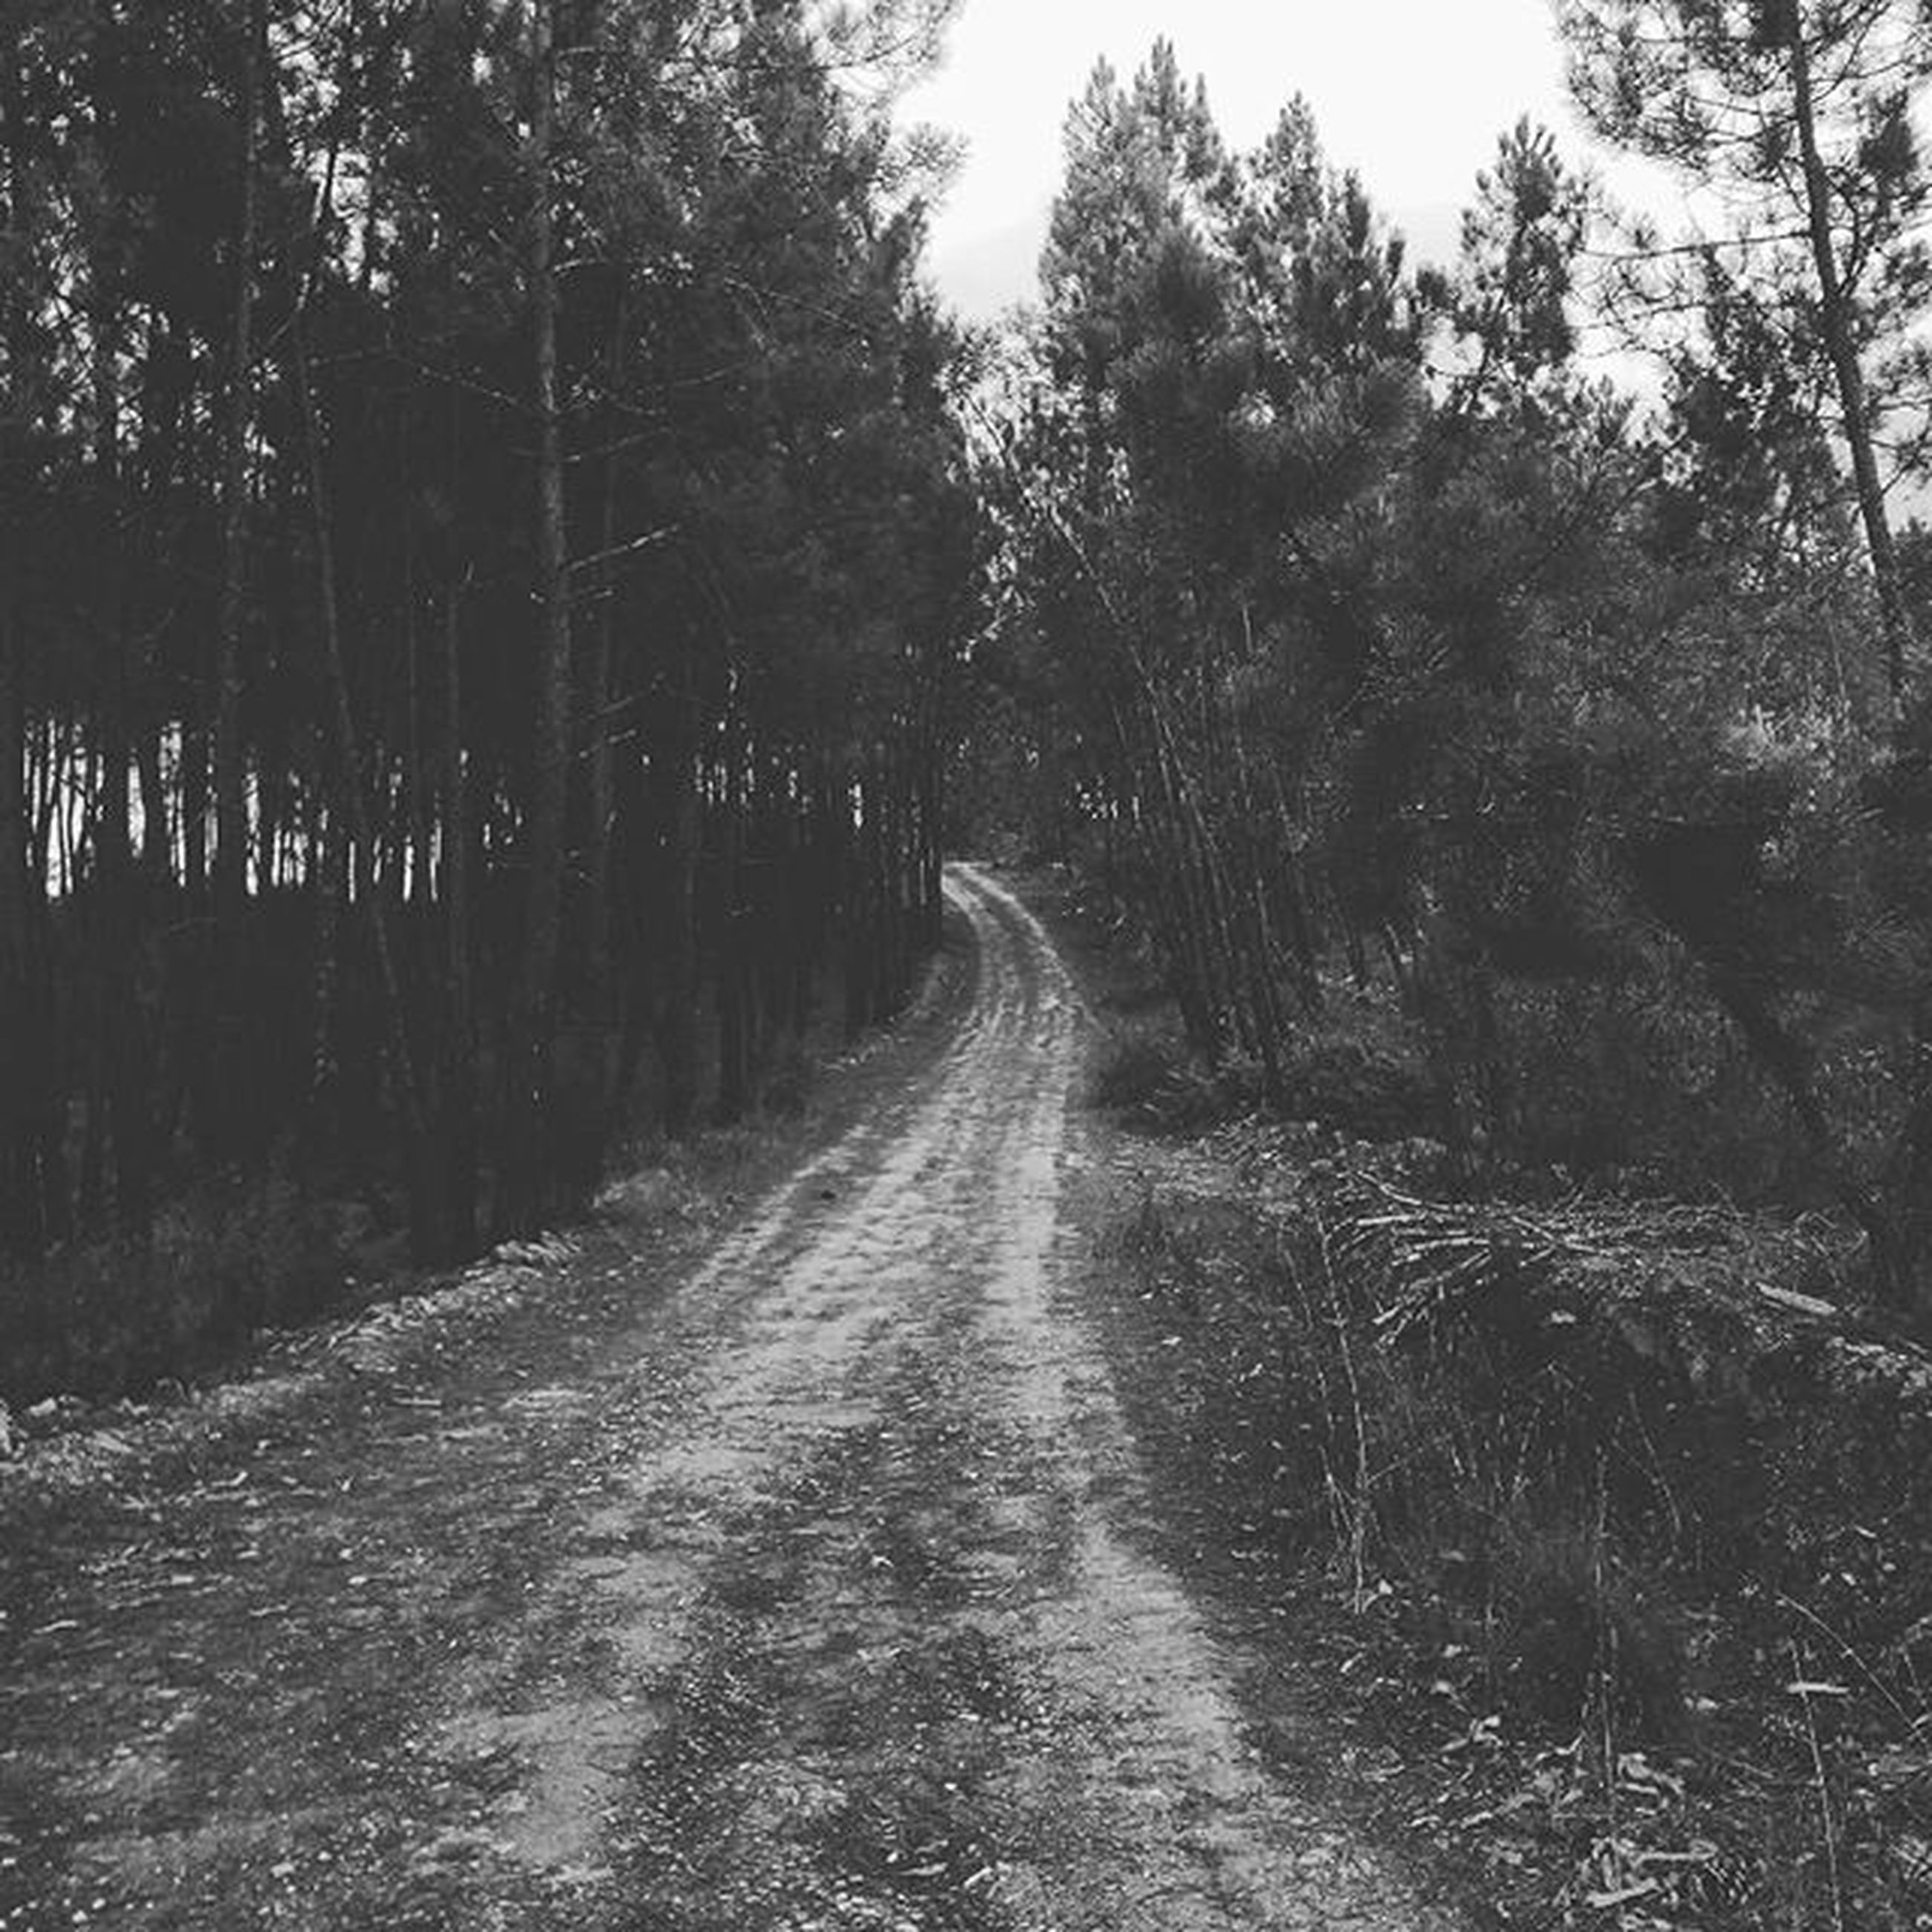 the way forward, tree, diminishing perspective, forest, vanishing point, tranquility, dirt road, nature, tranquil scene, growth, transportation, road, beauty in nature, landscape, non-urban scene, scenics, day, outdoors, no people, long